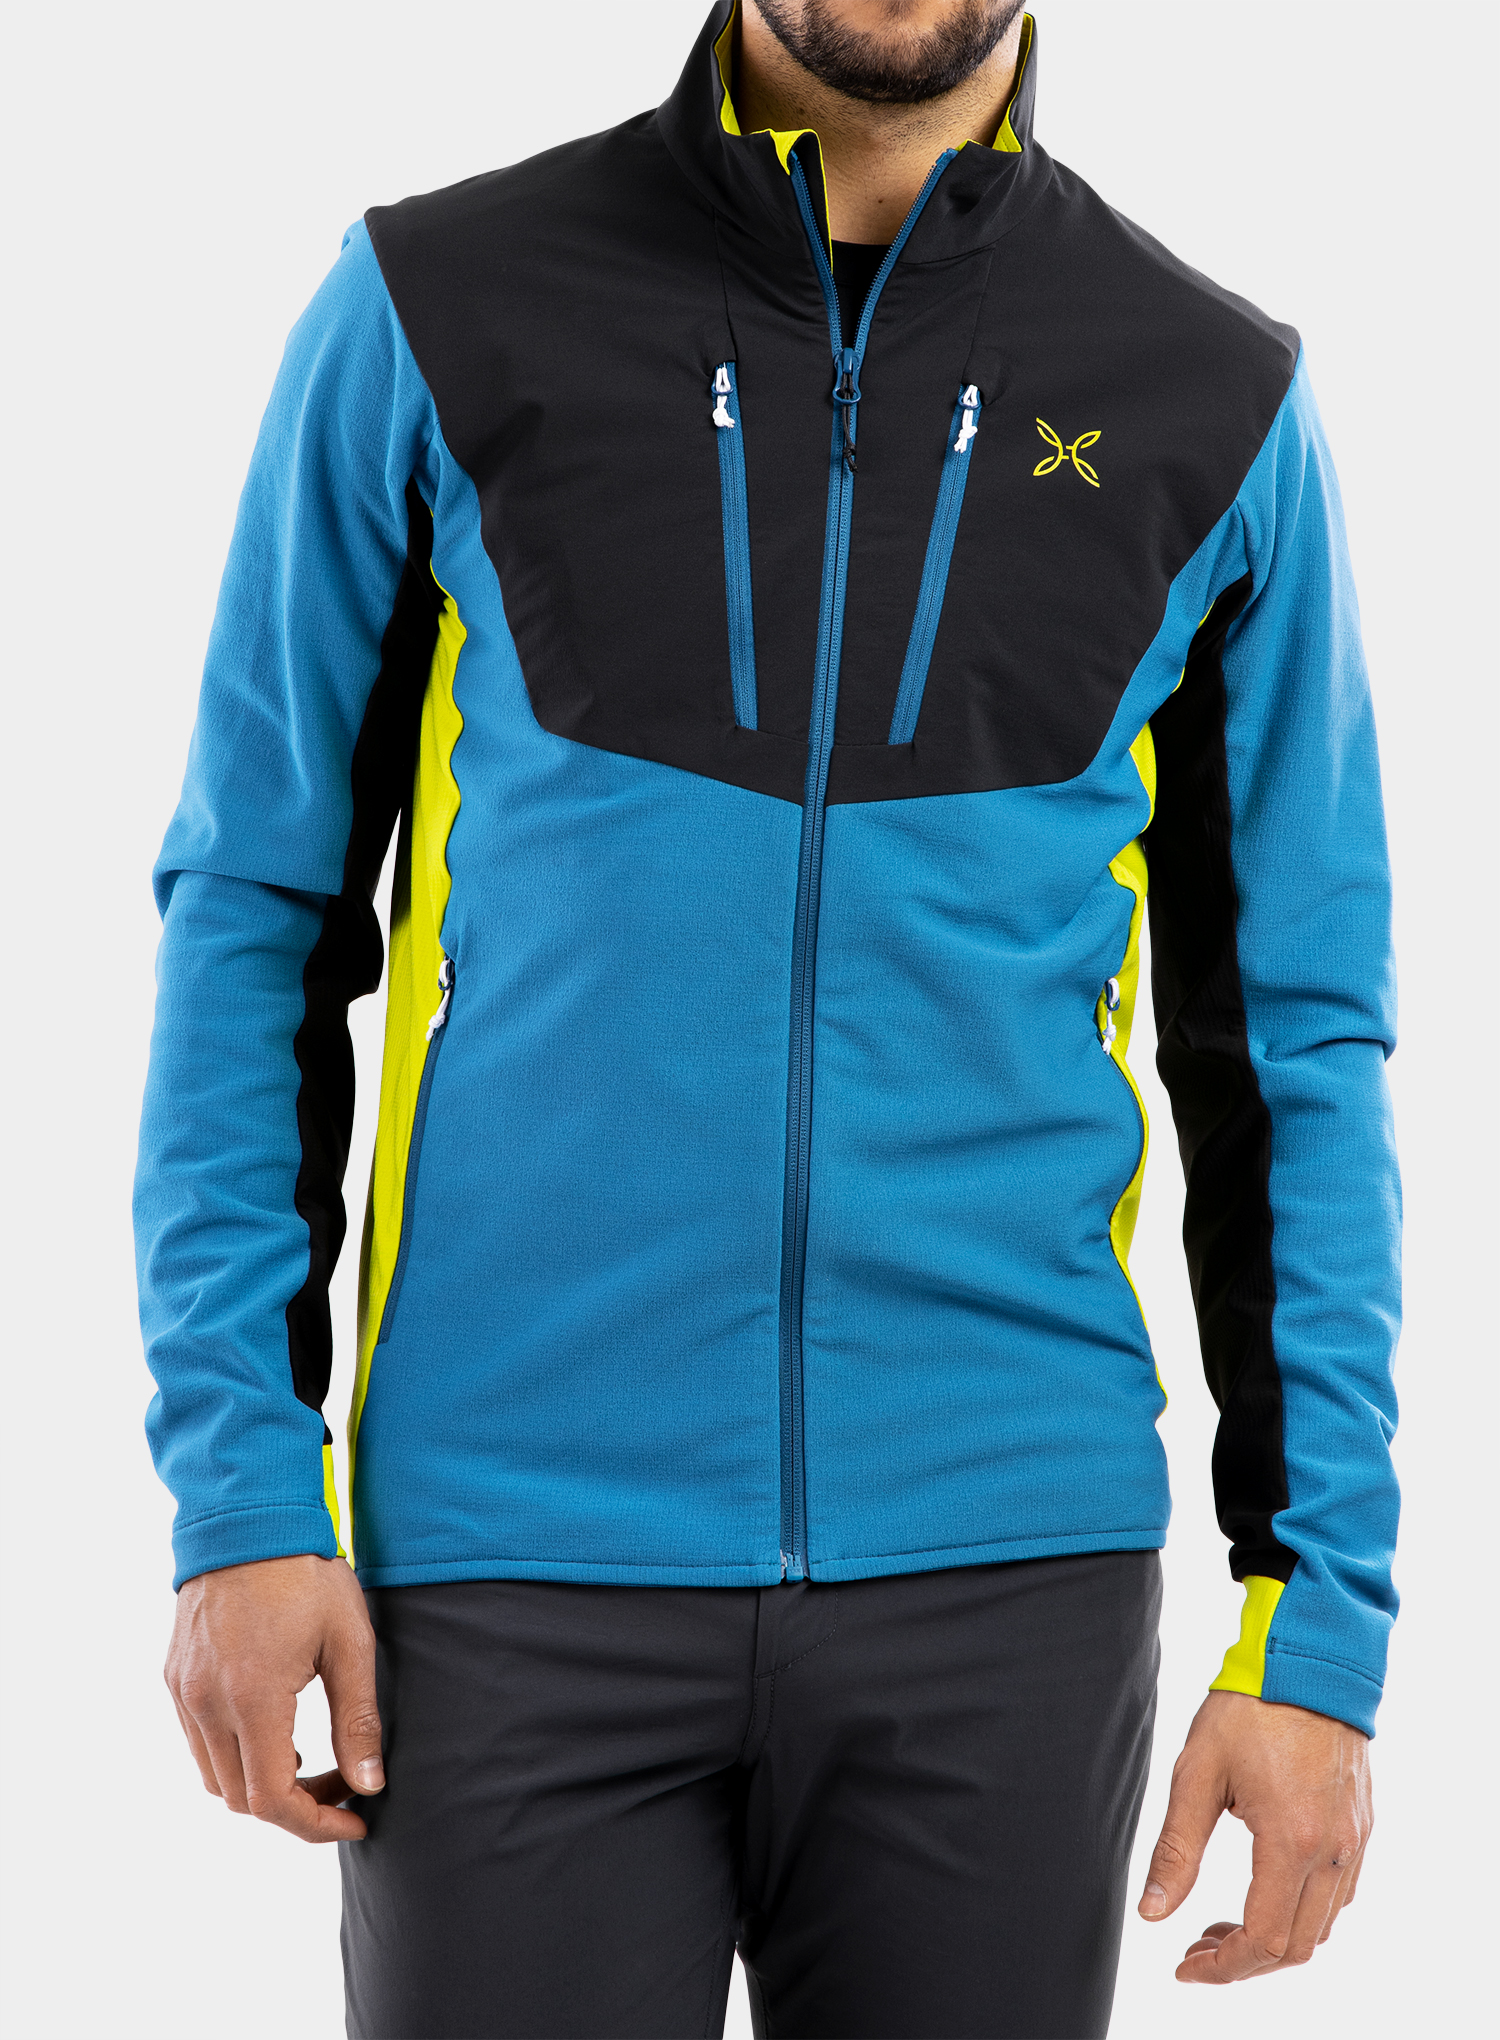 Bluza Montura Stretch Pro 2.0 Jacket - teal blue/lime green - zdjęcie nr. 1